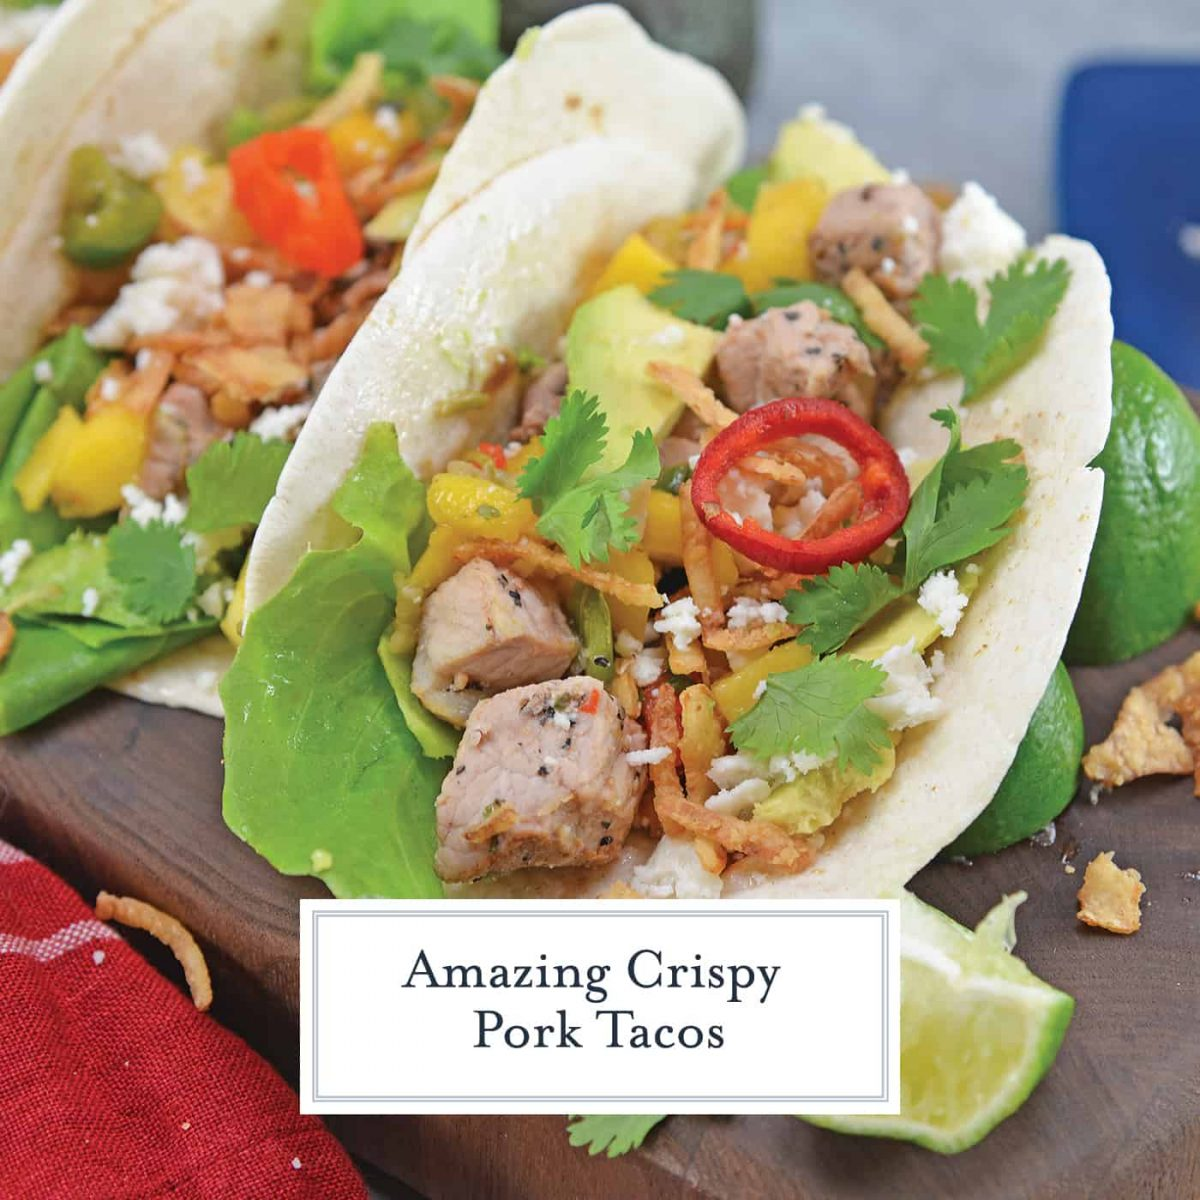 Crispy Pork Tacos are soft tacos filled with mango salsa, cool avocado, crumbly queso fresco, butter lettuce and crispy onion straws. #porktacos #streettacos #homemadetacos www.savoryexperiments.com